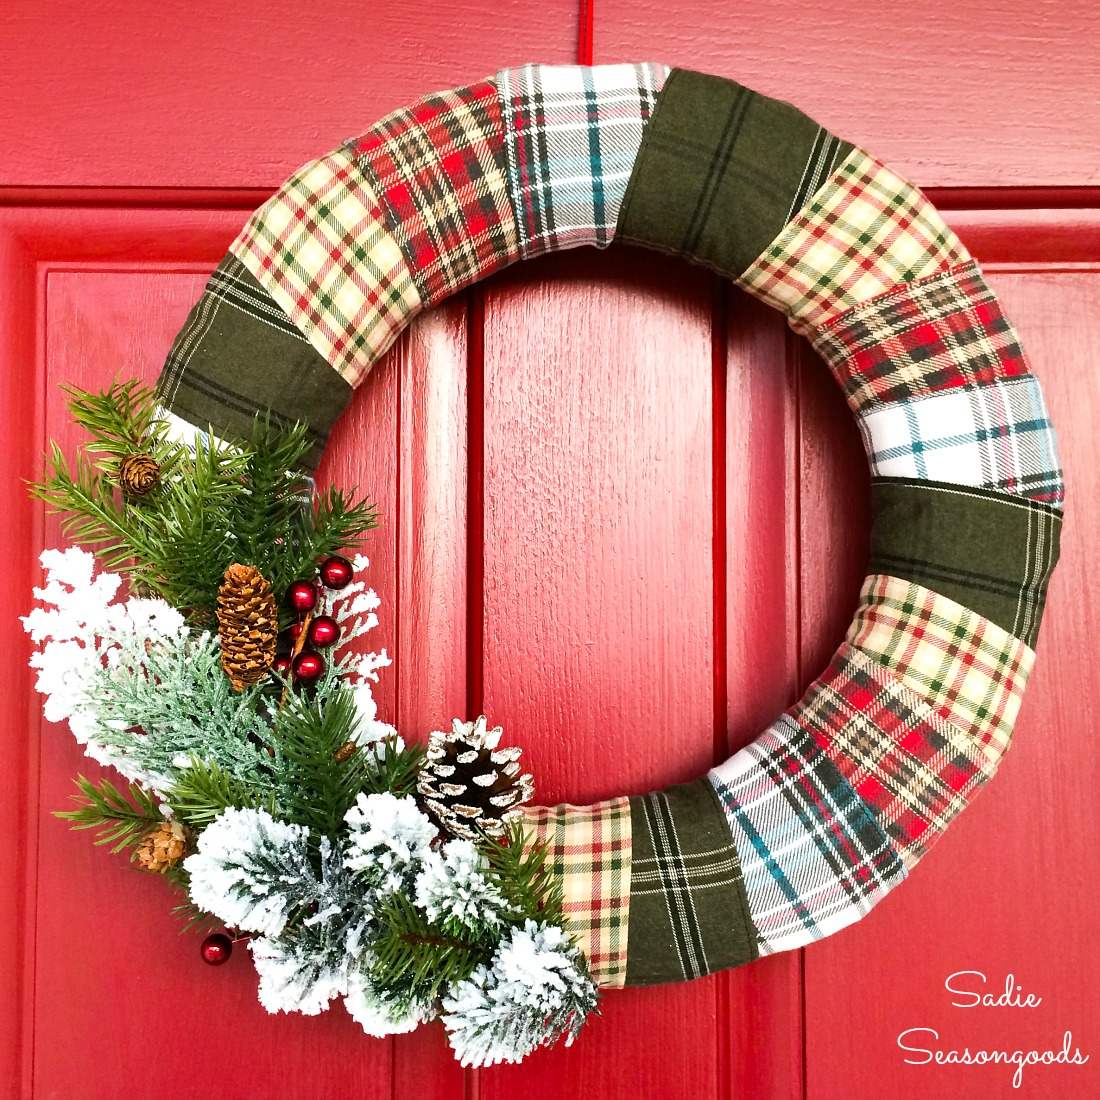 Upcycling the flannel fabric from used clothing to make rustic Christmas decorations for a Christmas cabin